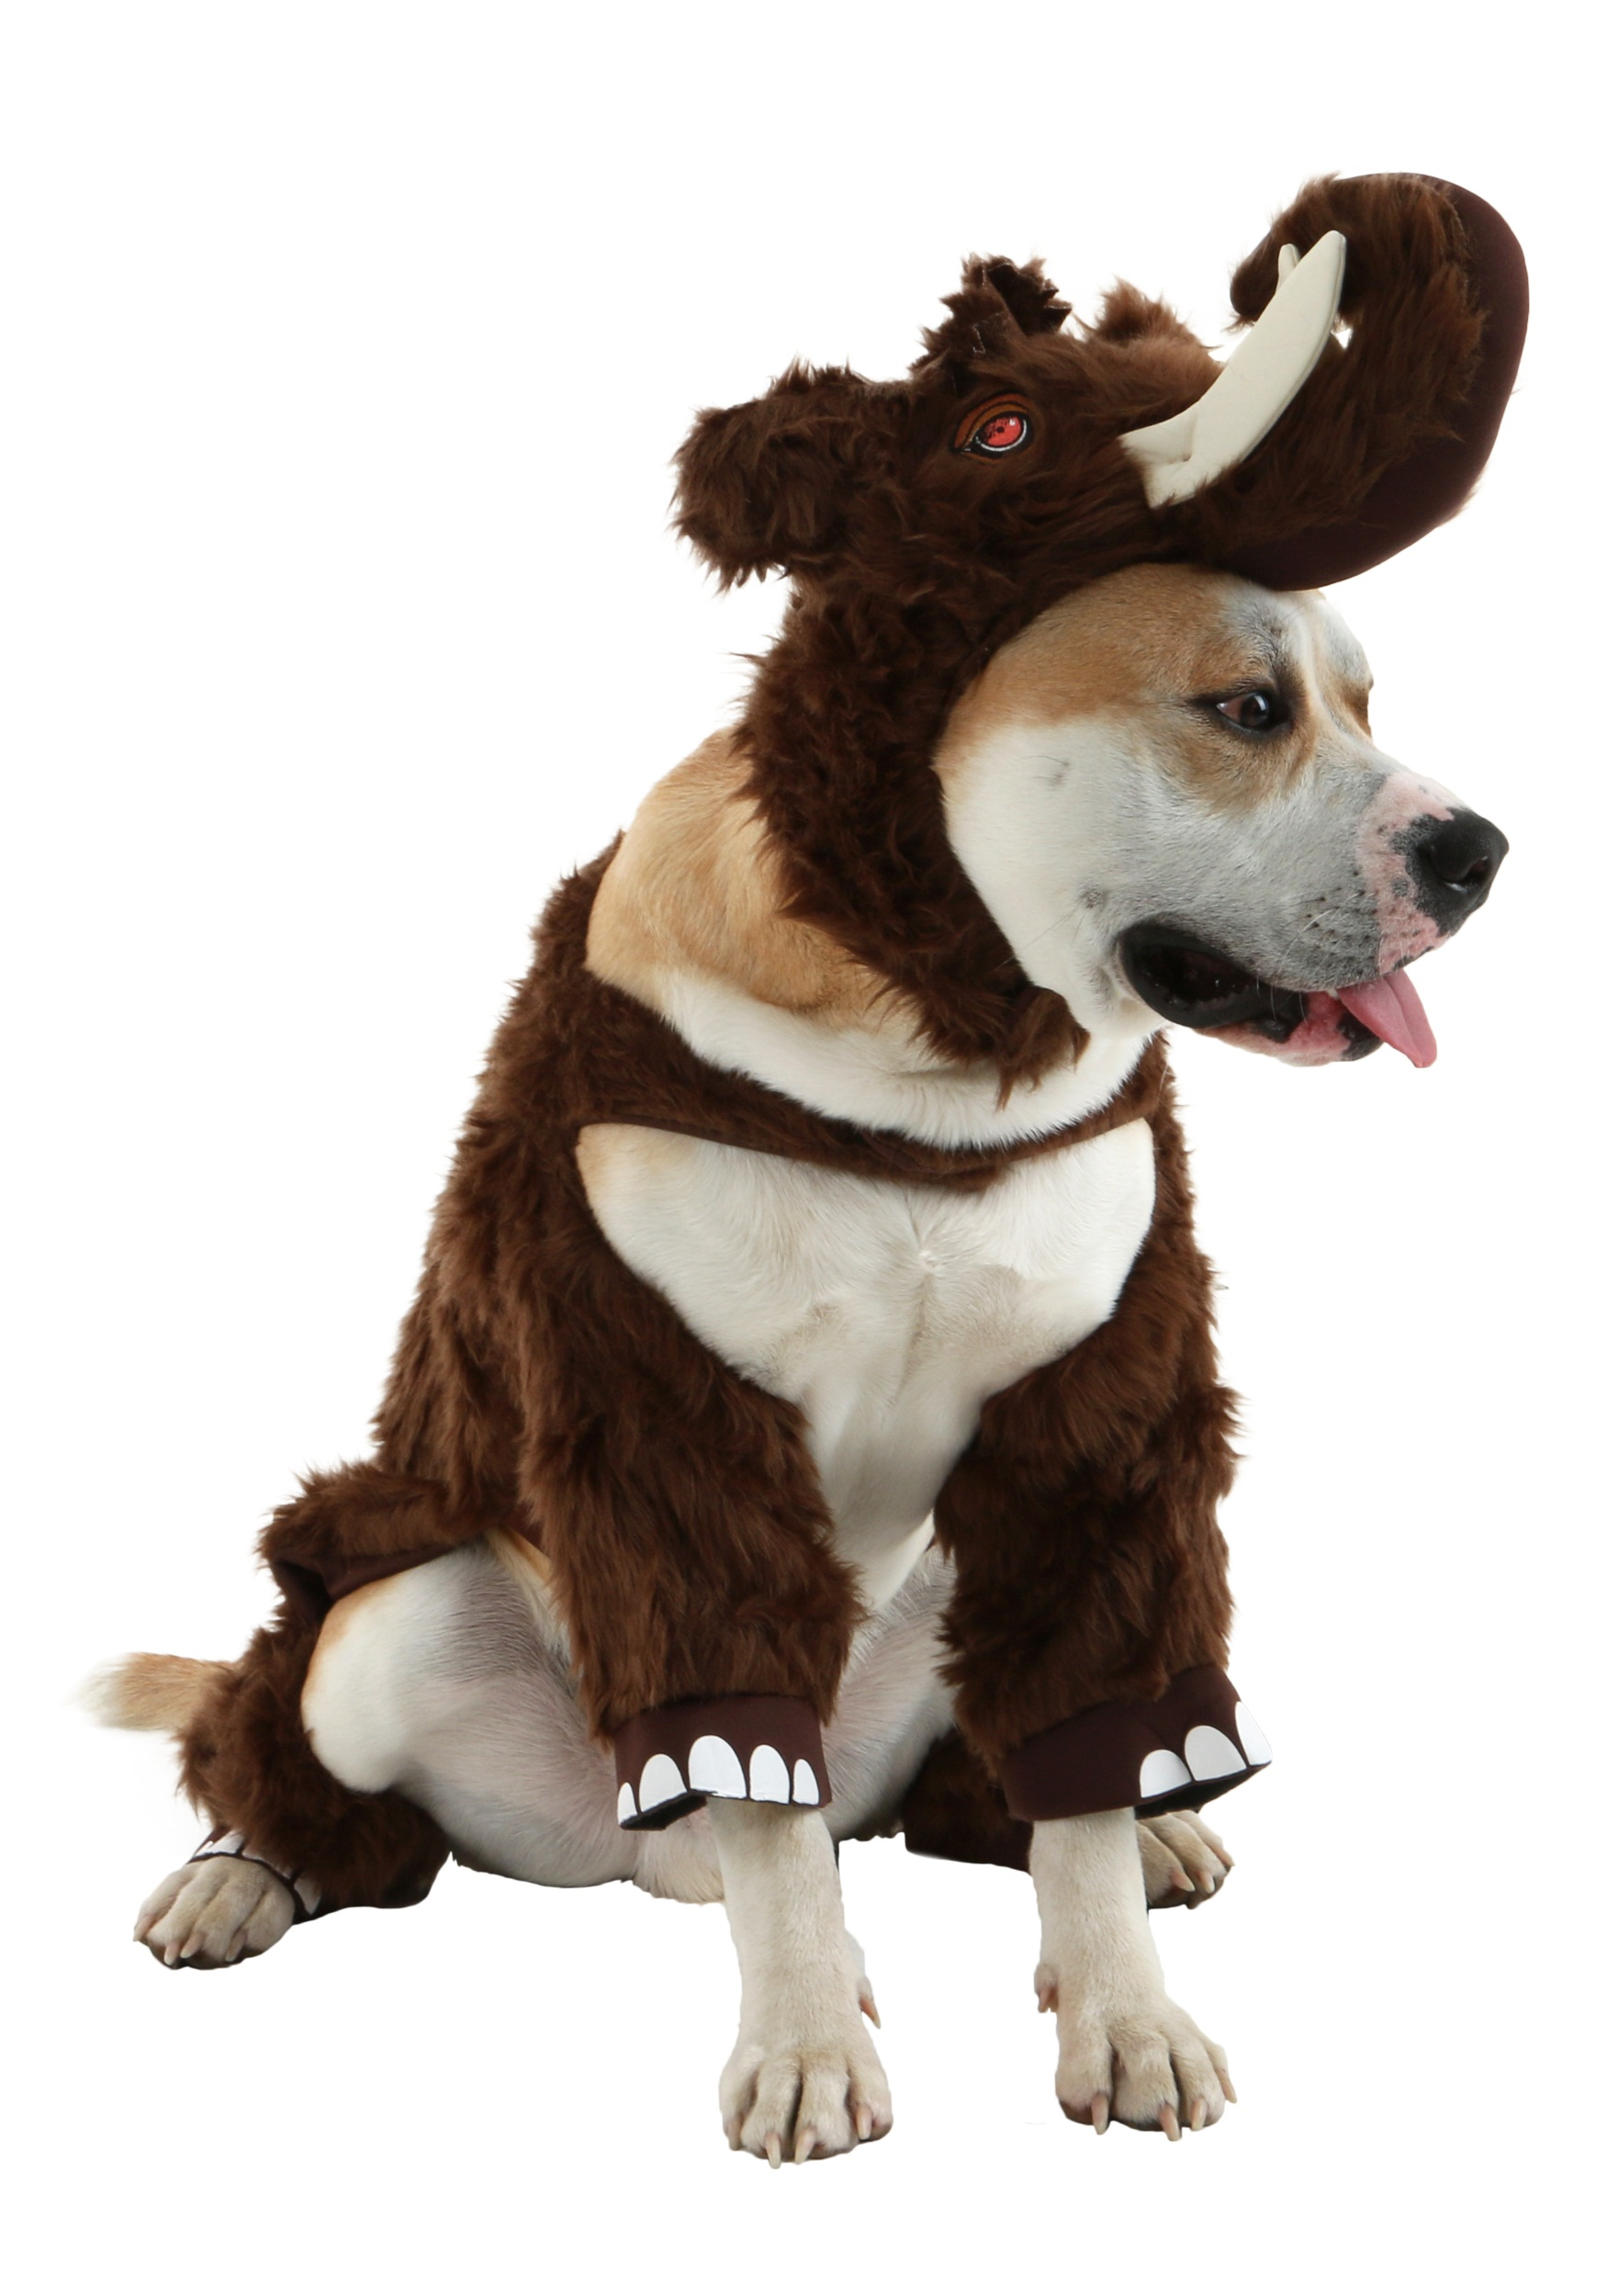 Woolly Mammoth Pet Costume - Funny Costumes for Dogs 8ea32c76035